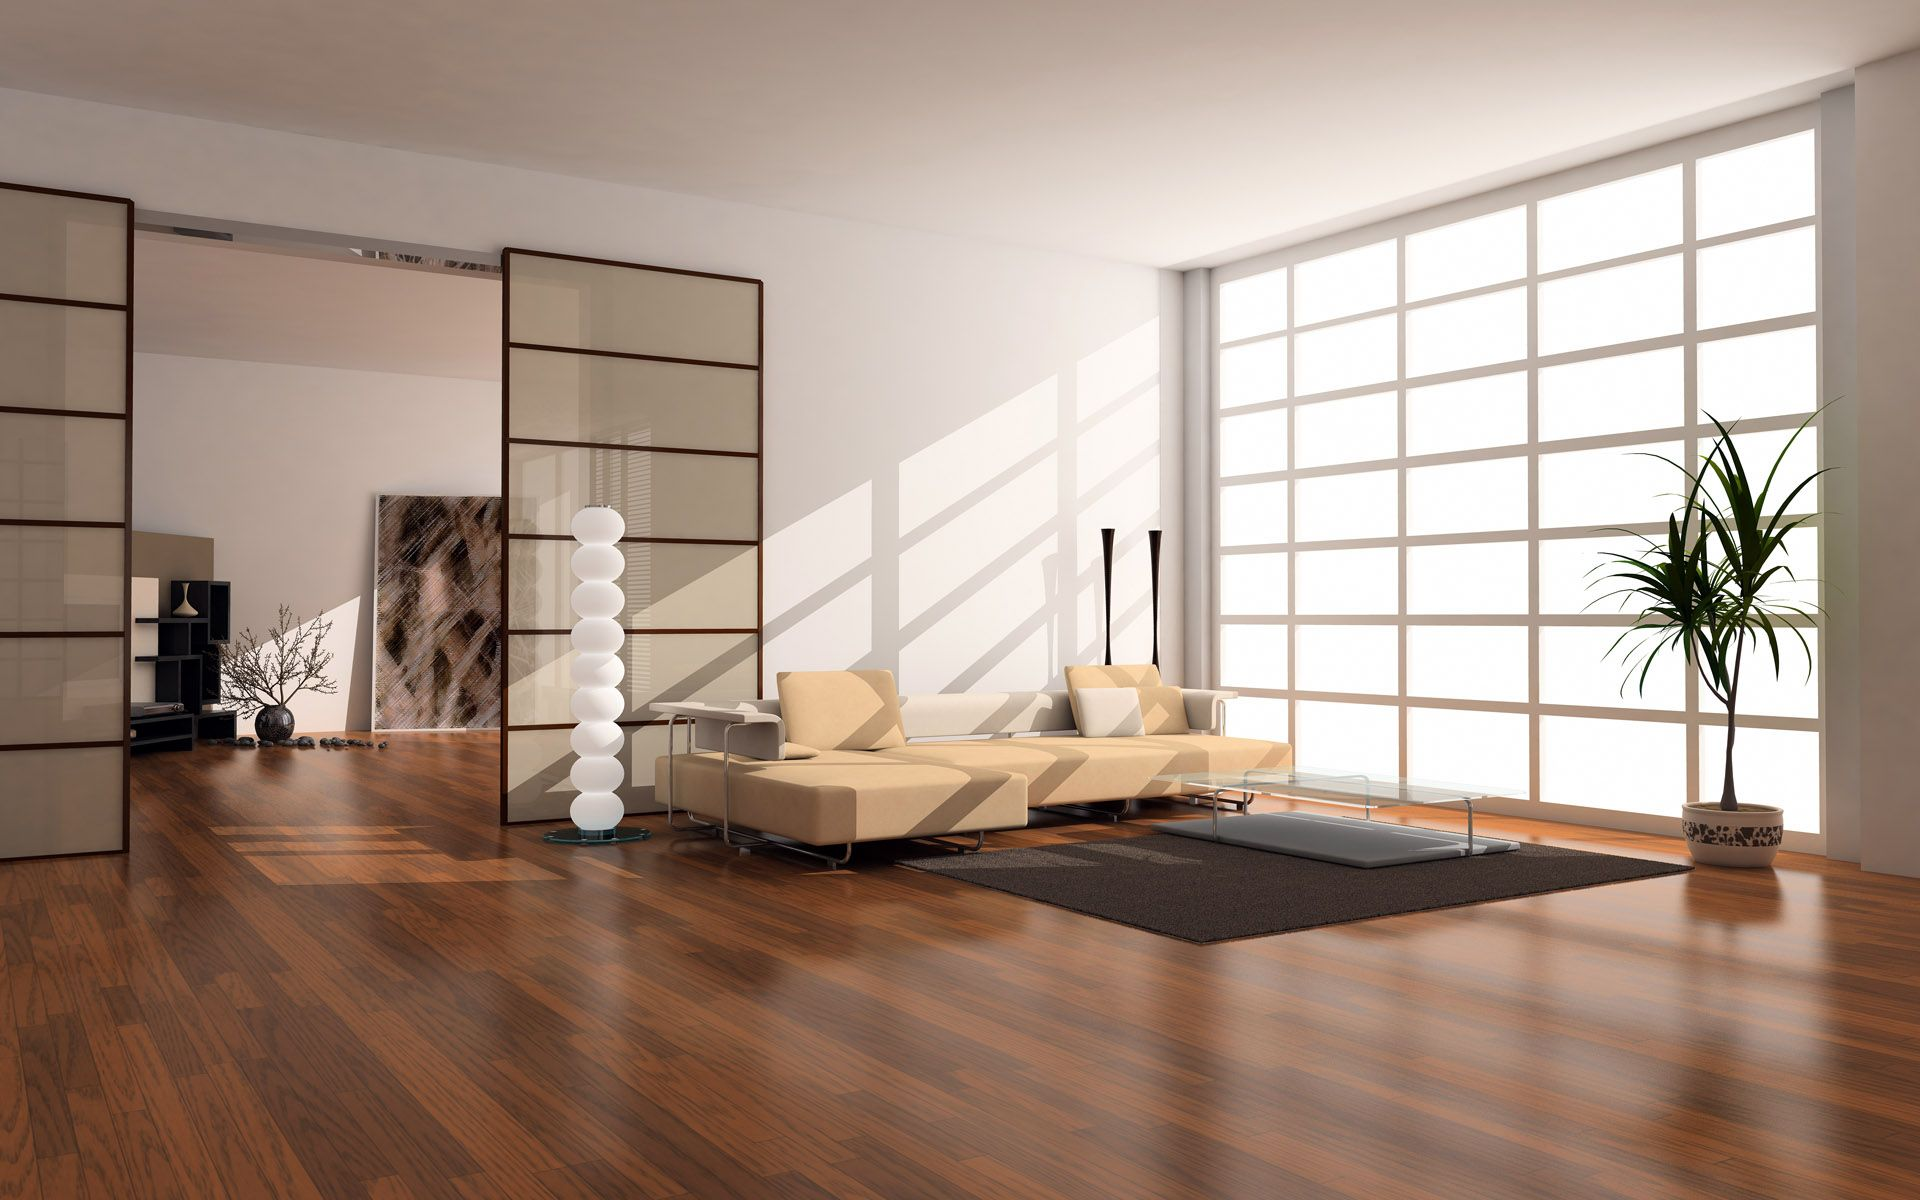 Interior Design Inspiring Wide Frosted Glass Windows